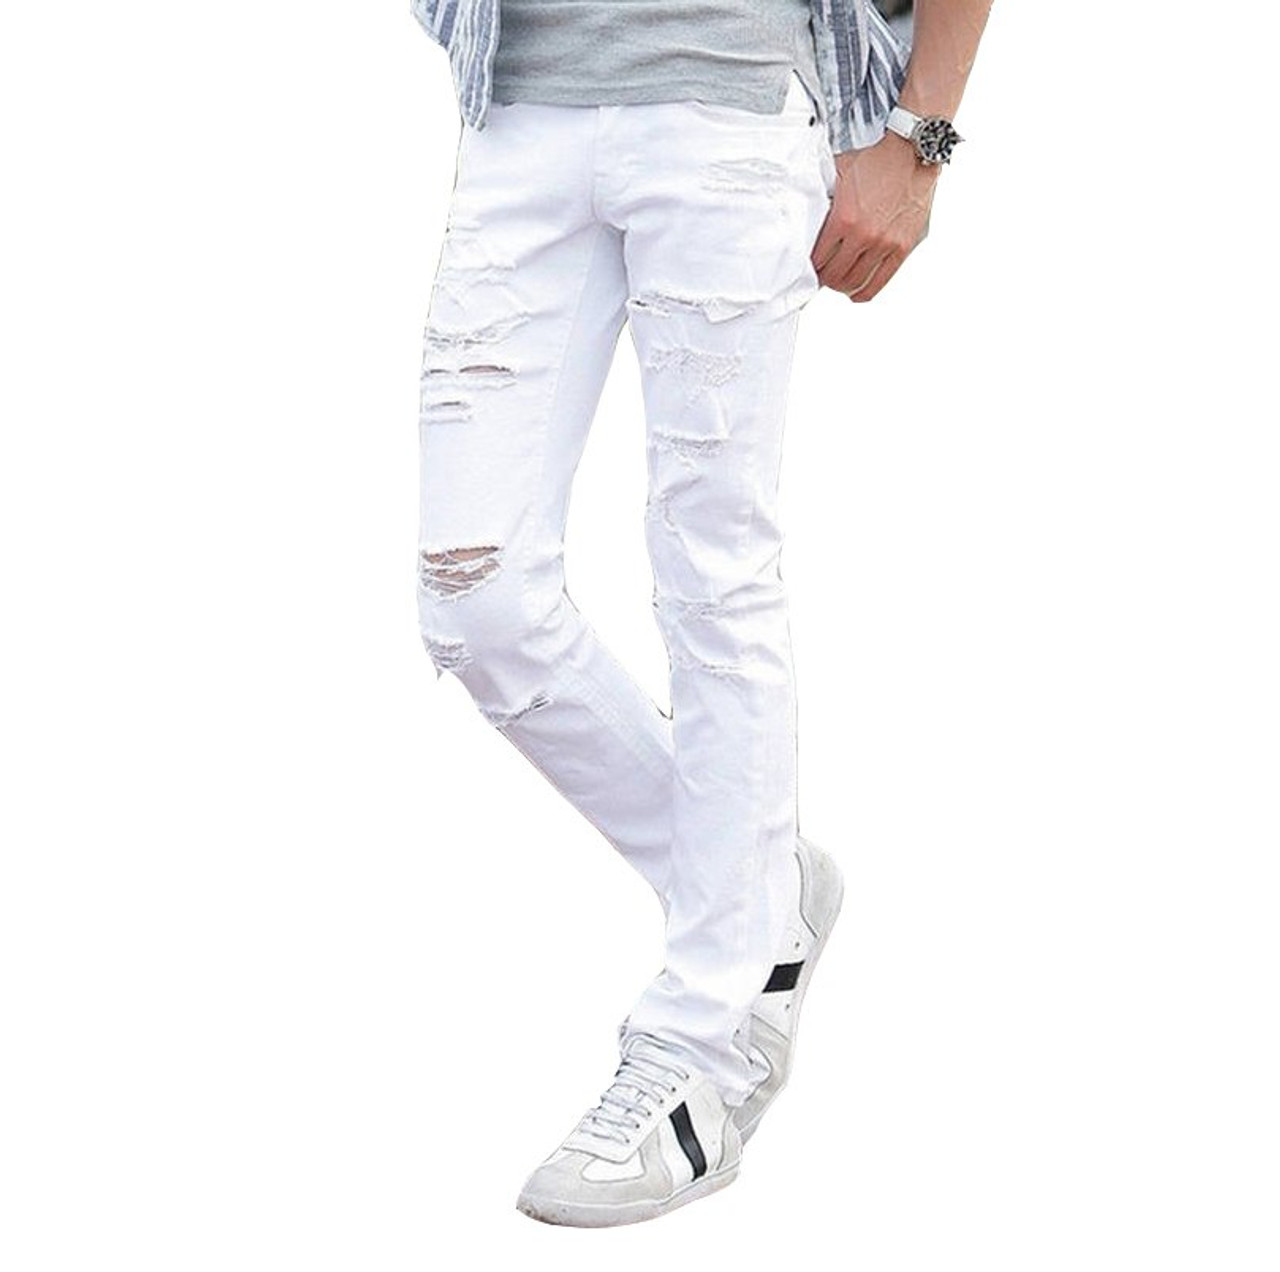 17e595da7c fashion Ripped Jeans Men With Holes Super Skinny Designer white Slim Fit  Jean Pants For Man ...